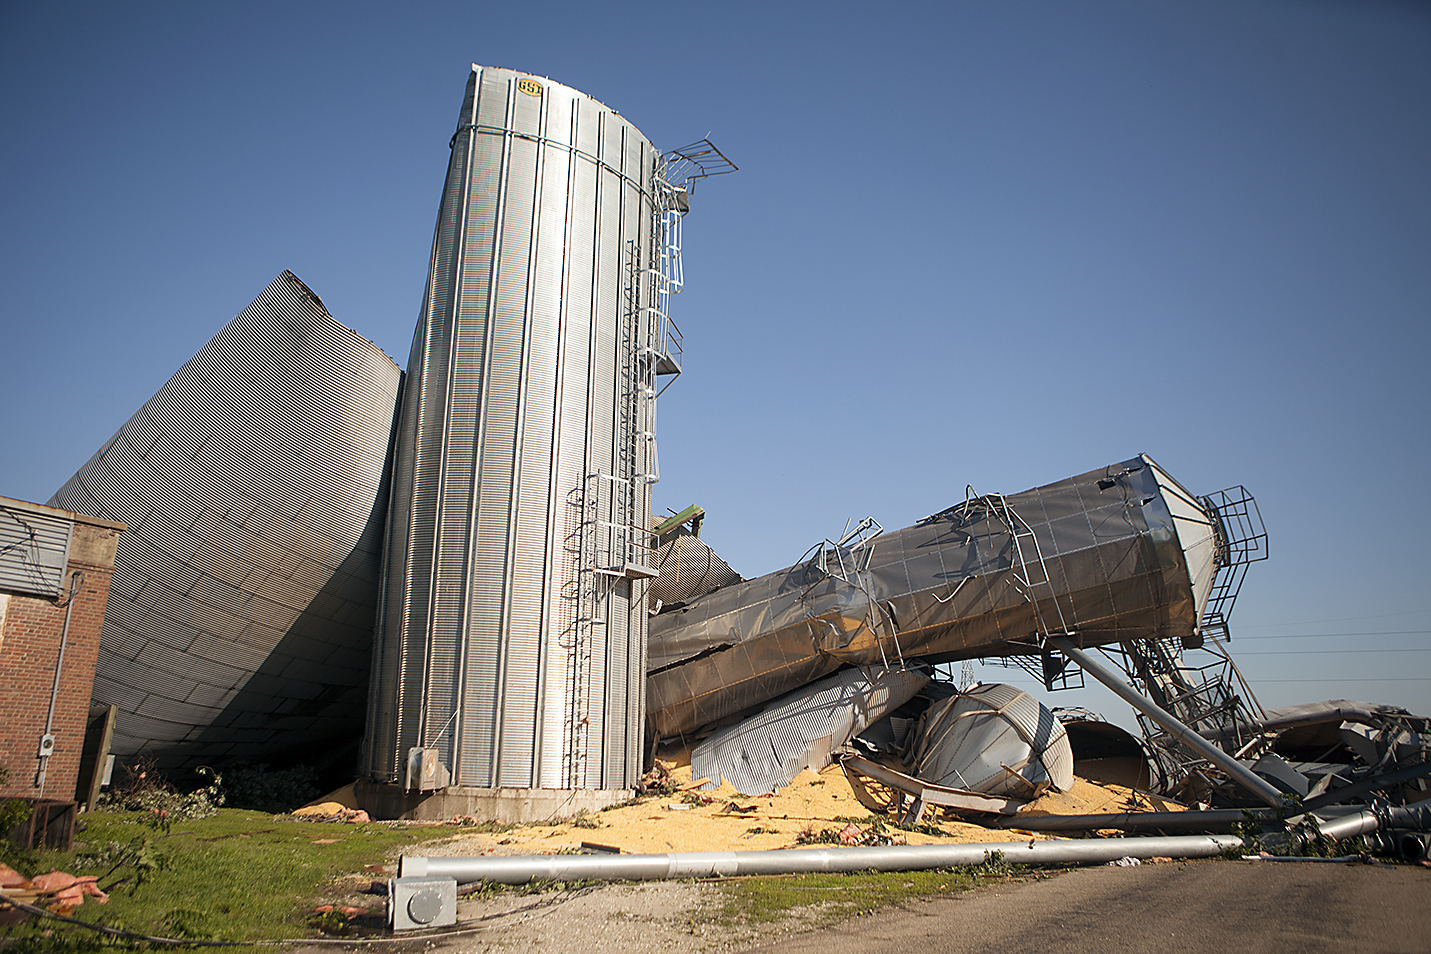 Multiple grain bins lie toppled over each other on July 17, 2015 in Cameron, Ill., the morning after a tornado swept through the city.